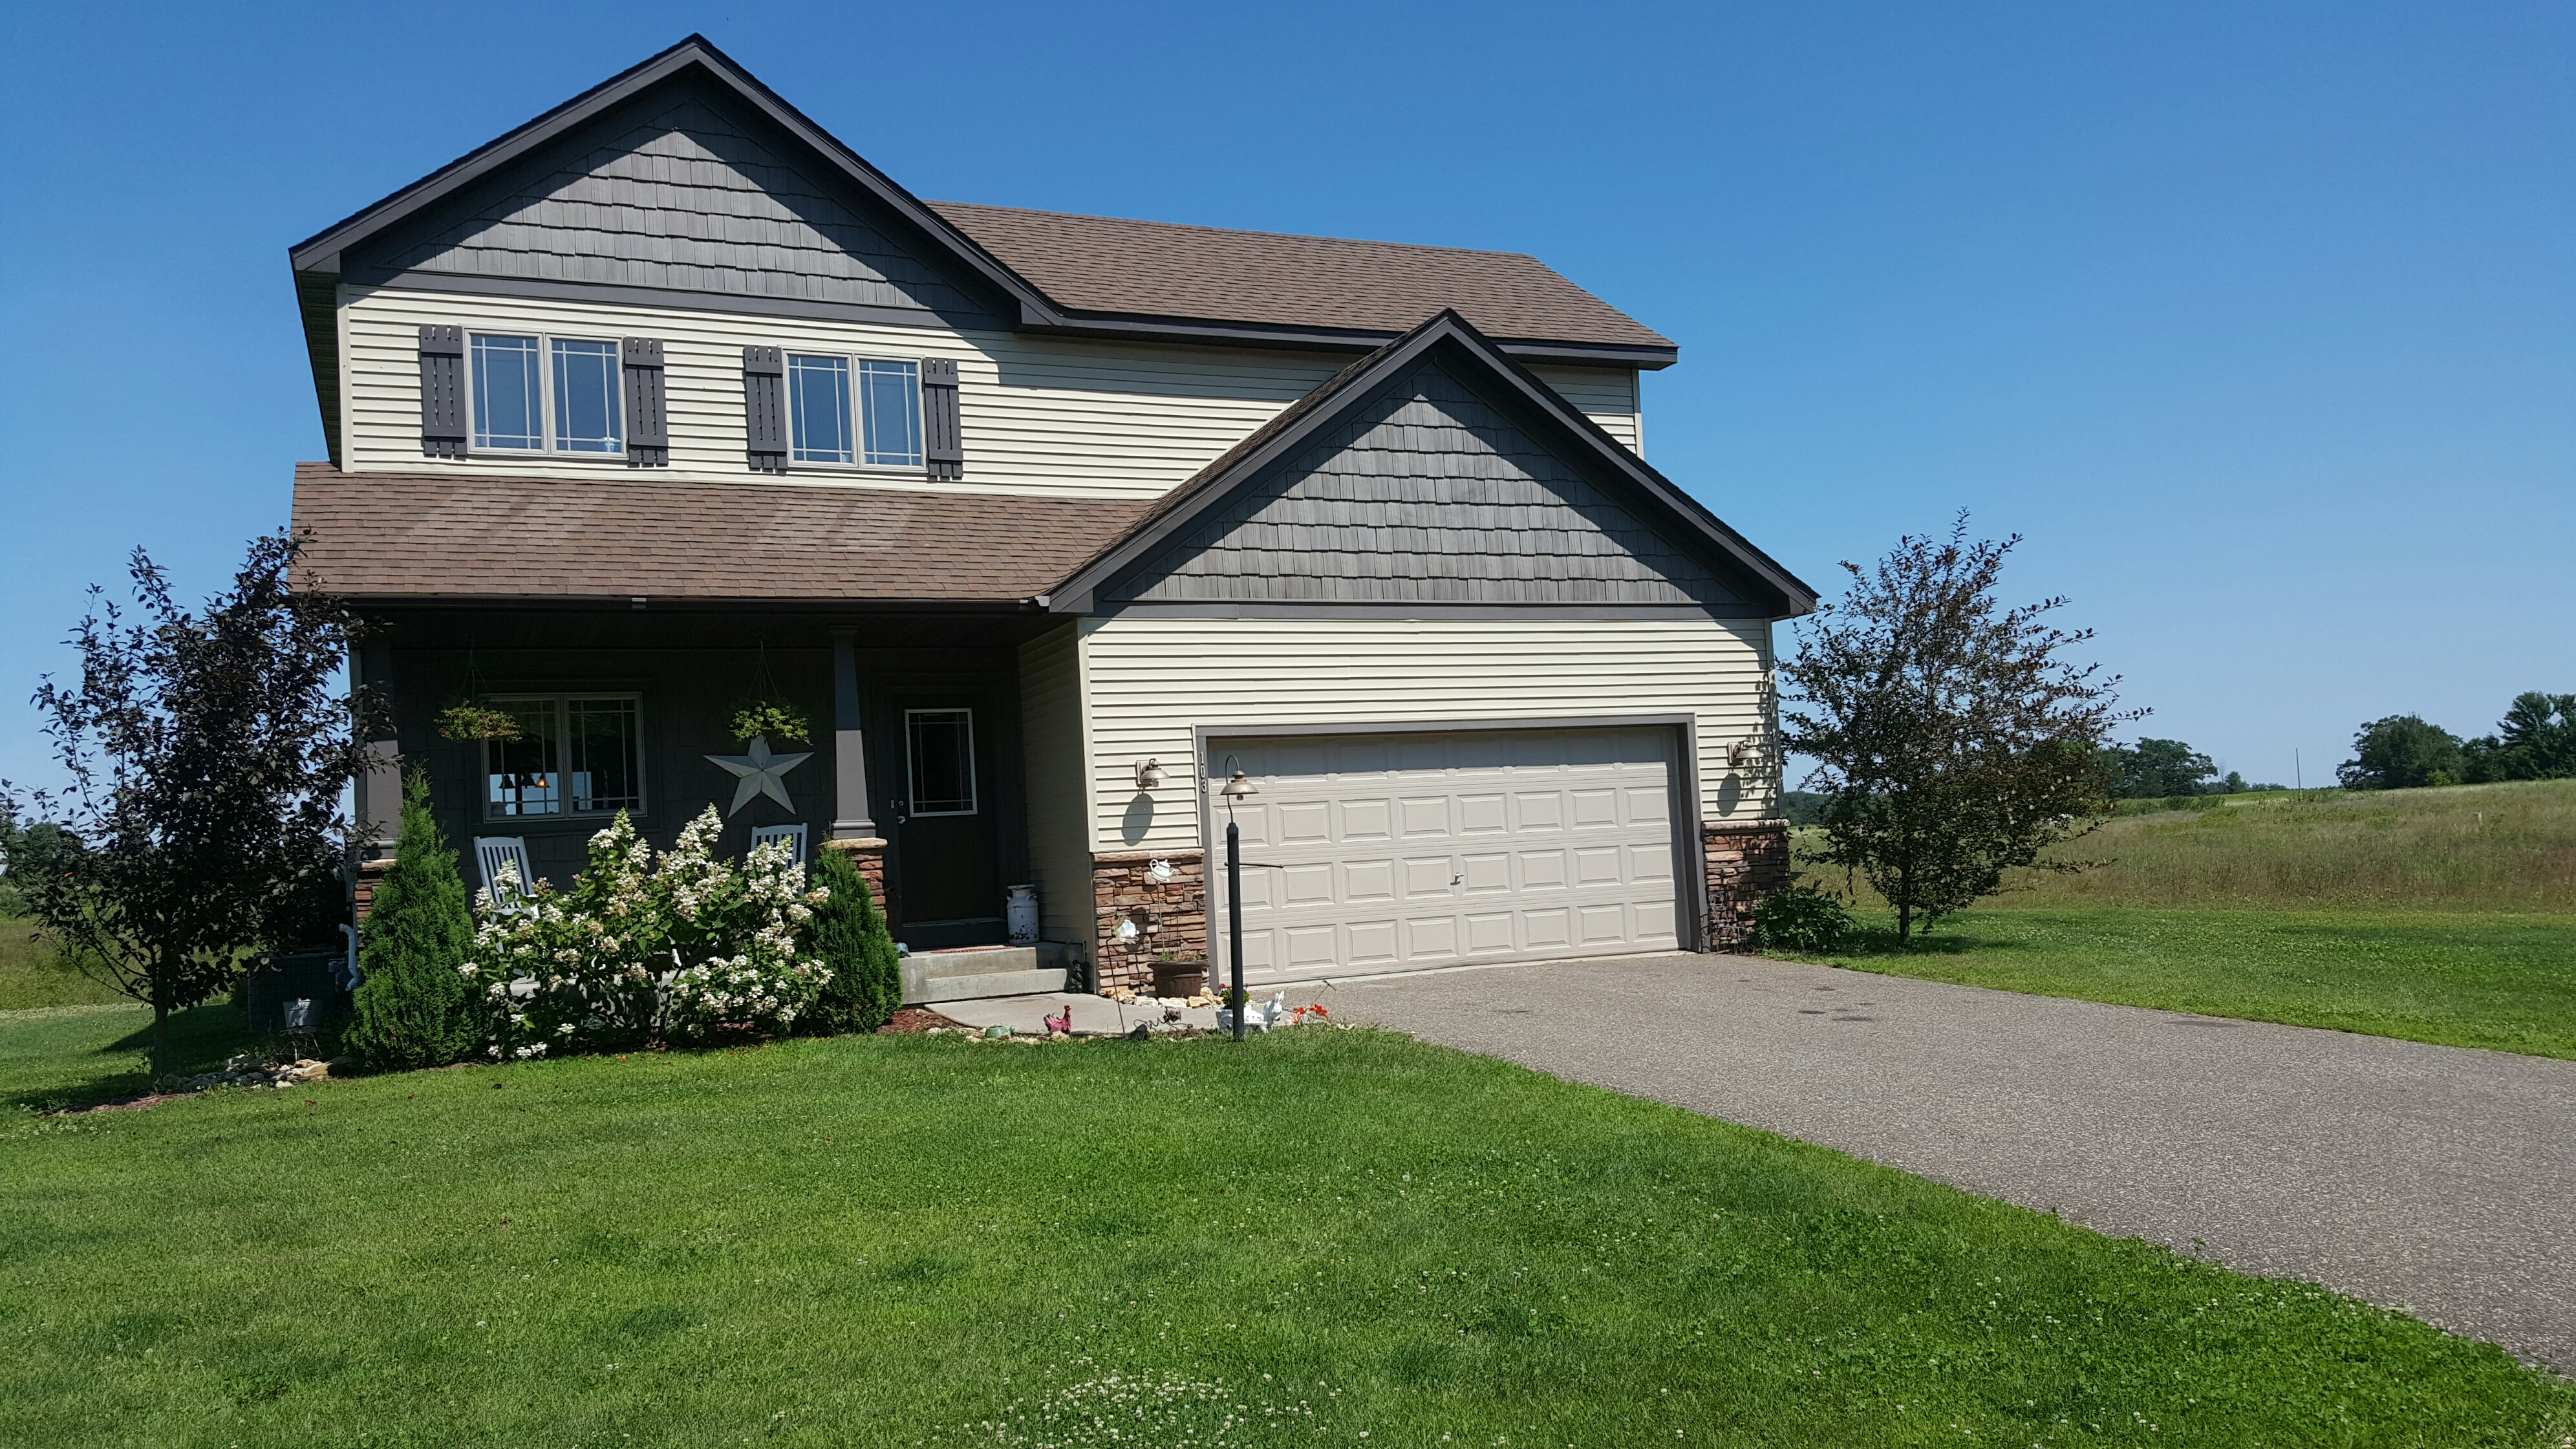 103 Biermann Blvd Turtle Lake, WI 54889